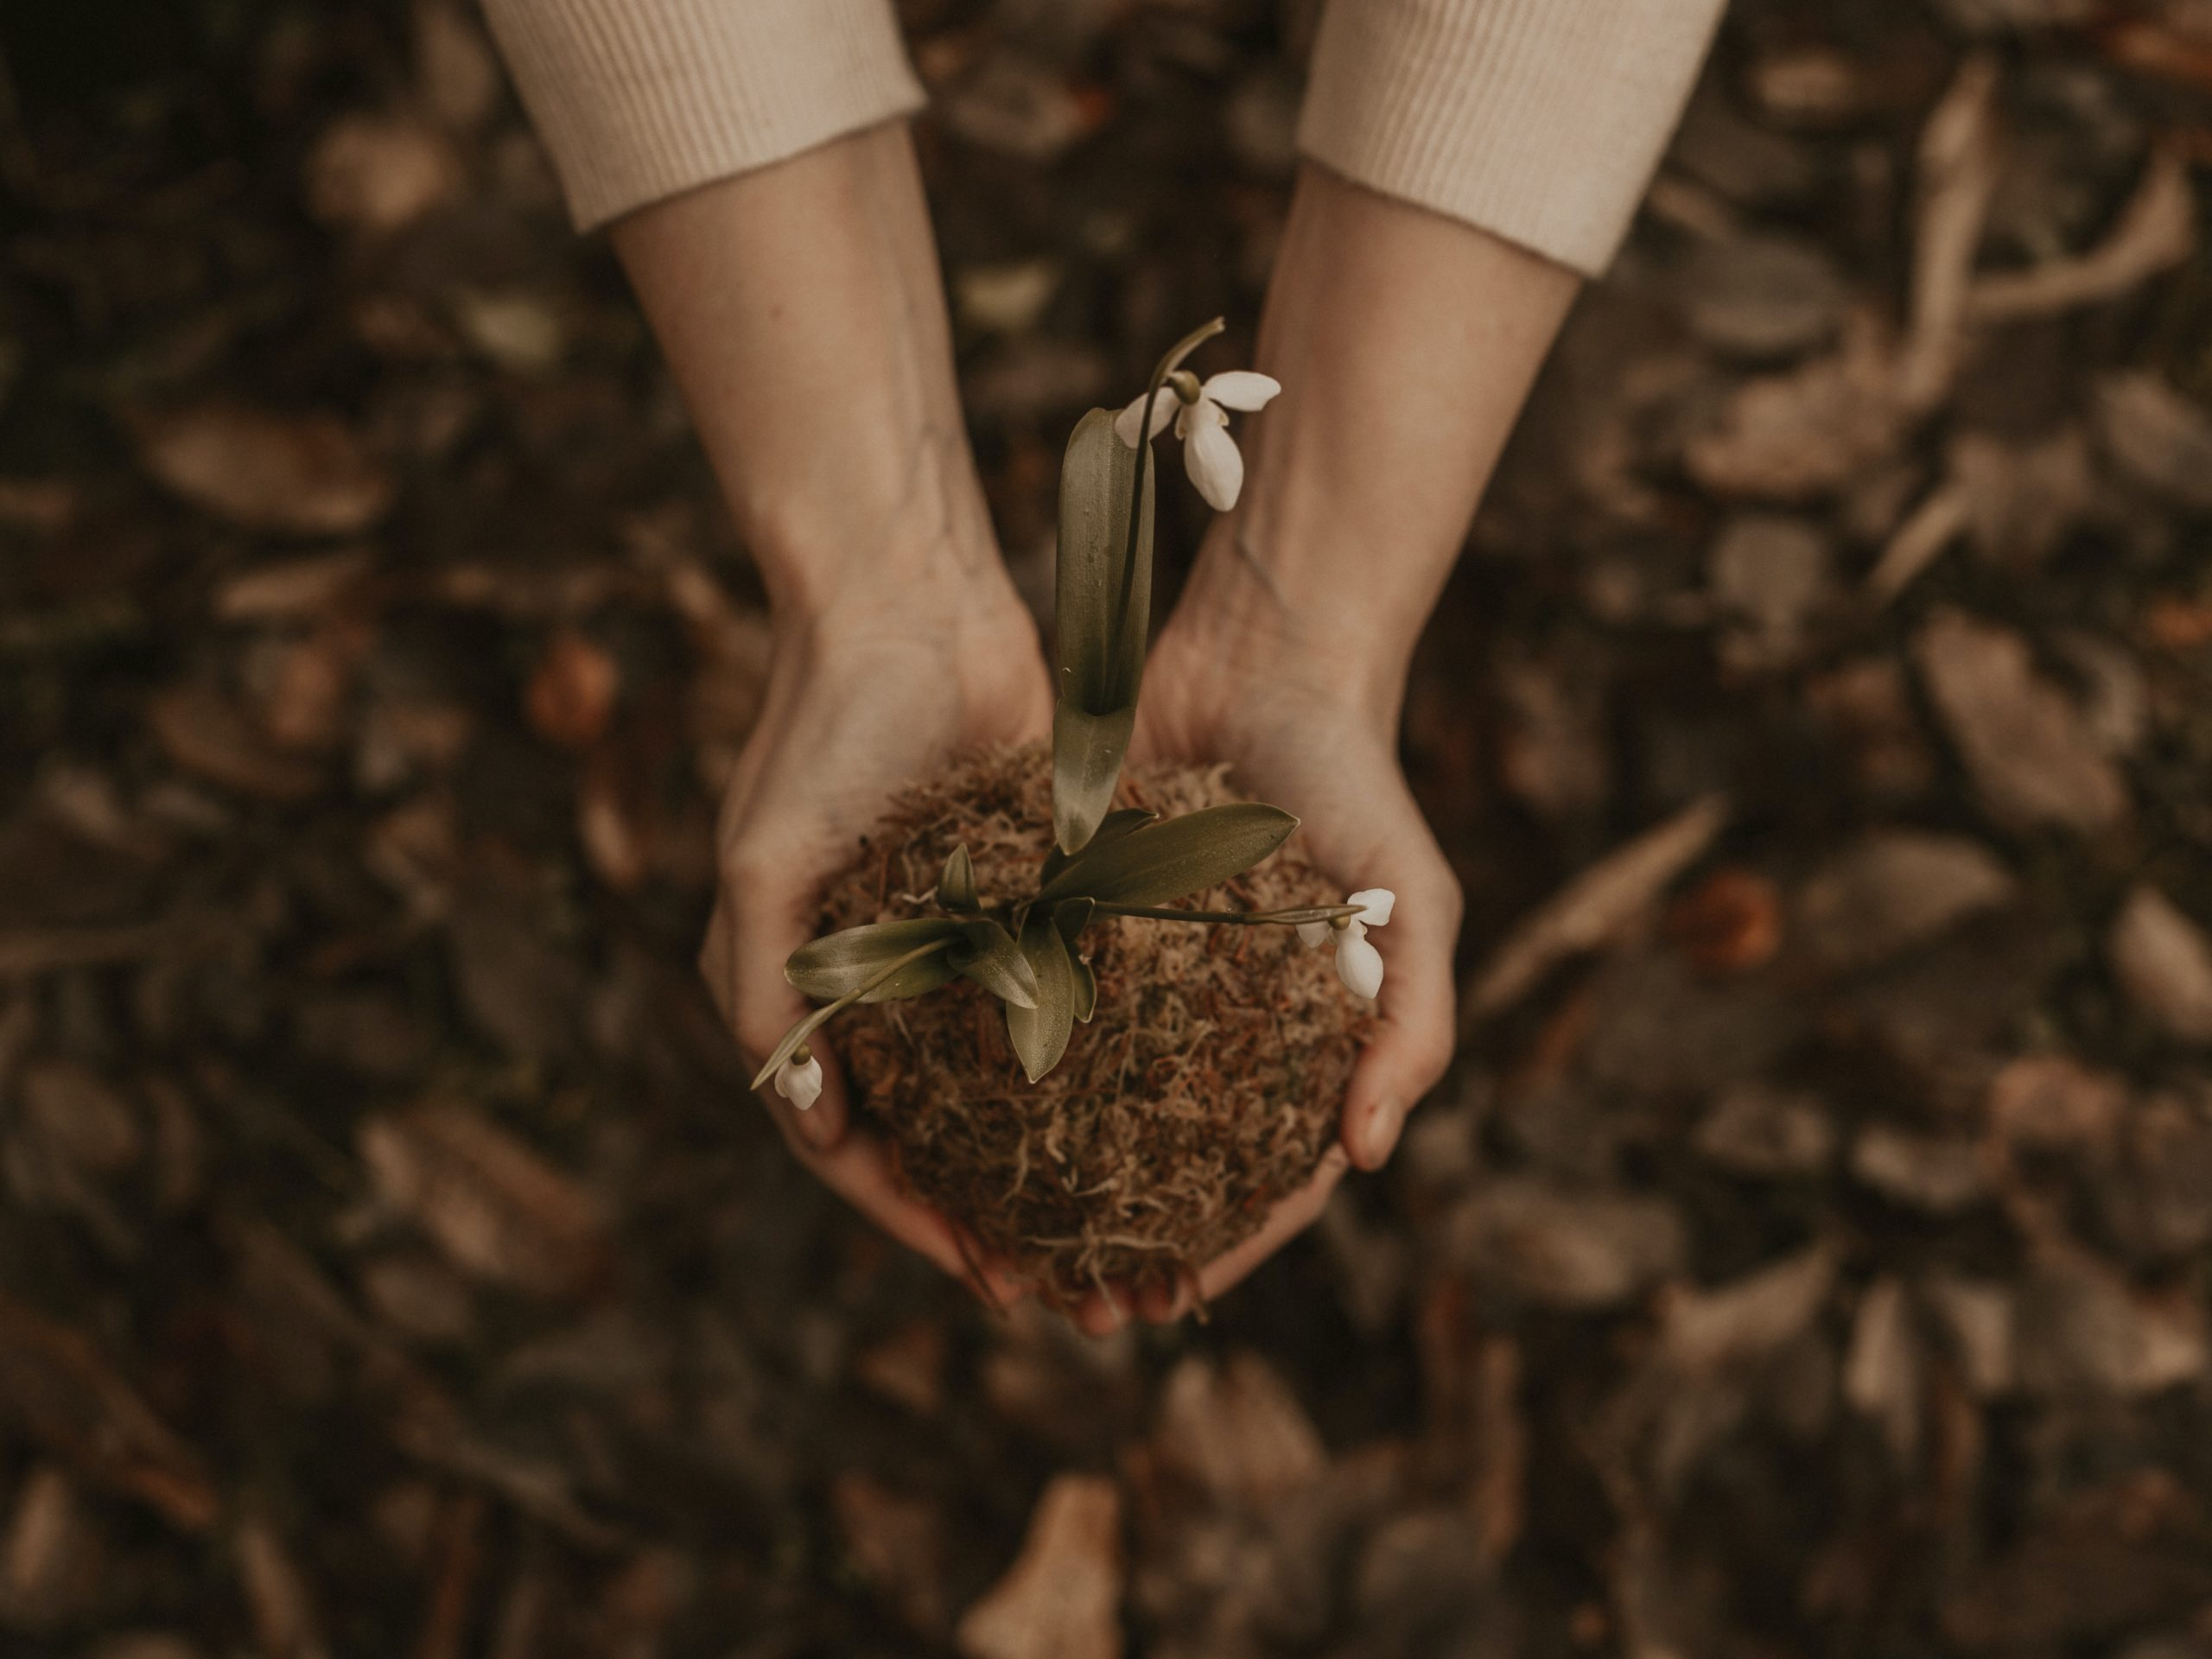 Hands holding dirt with a solitary flower